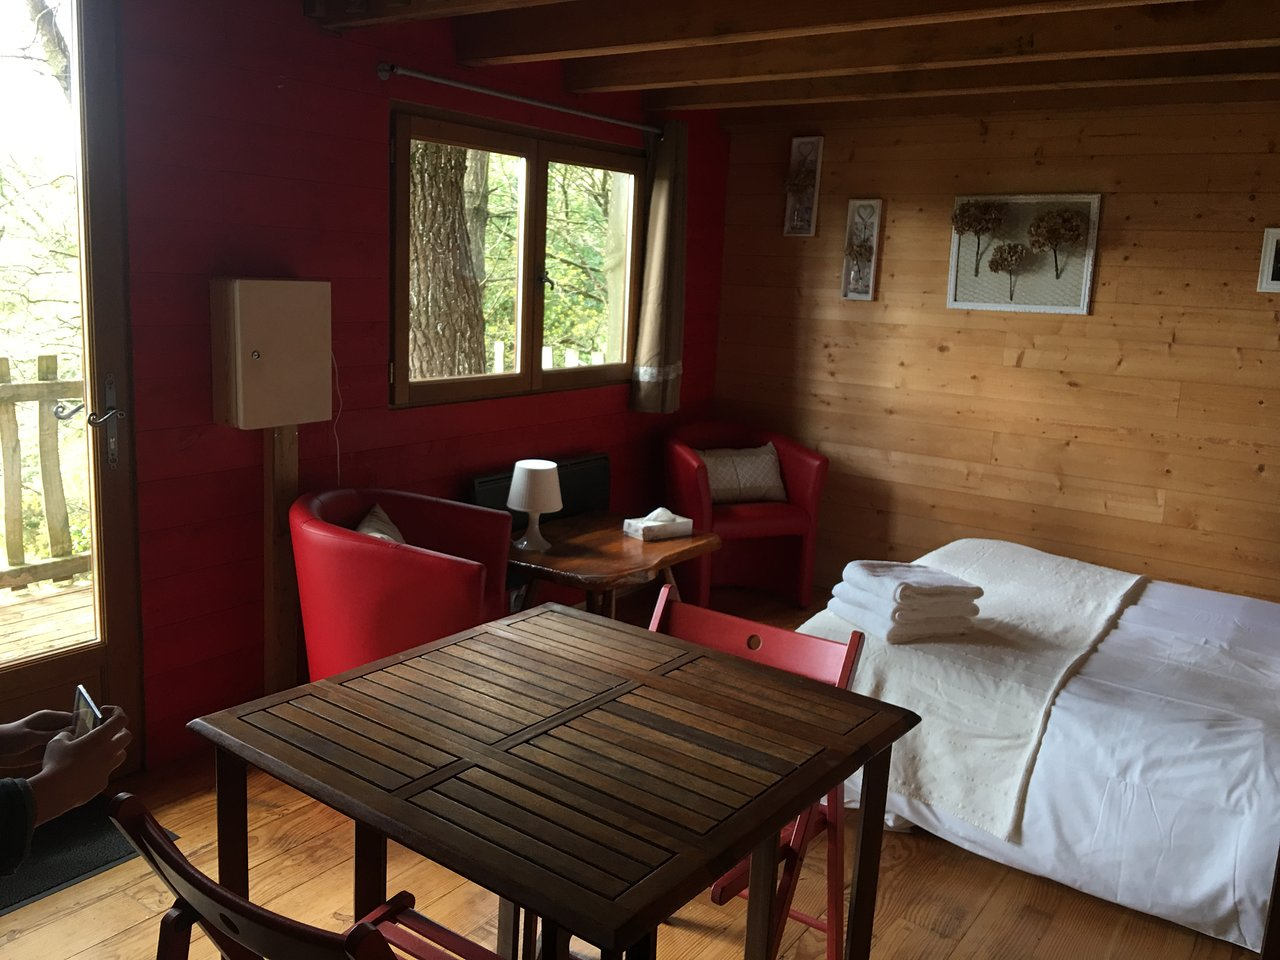 Cabanes De Bretagne Moustoir Ac bretagne en cabane - prices & lodging reviews (moustoir-ac